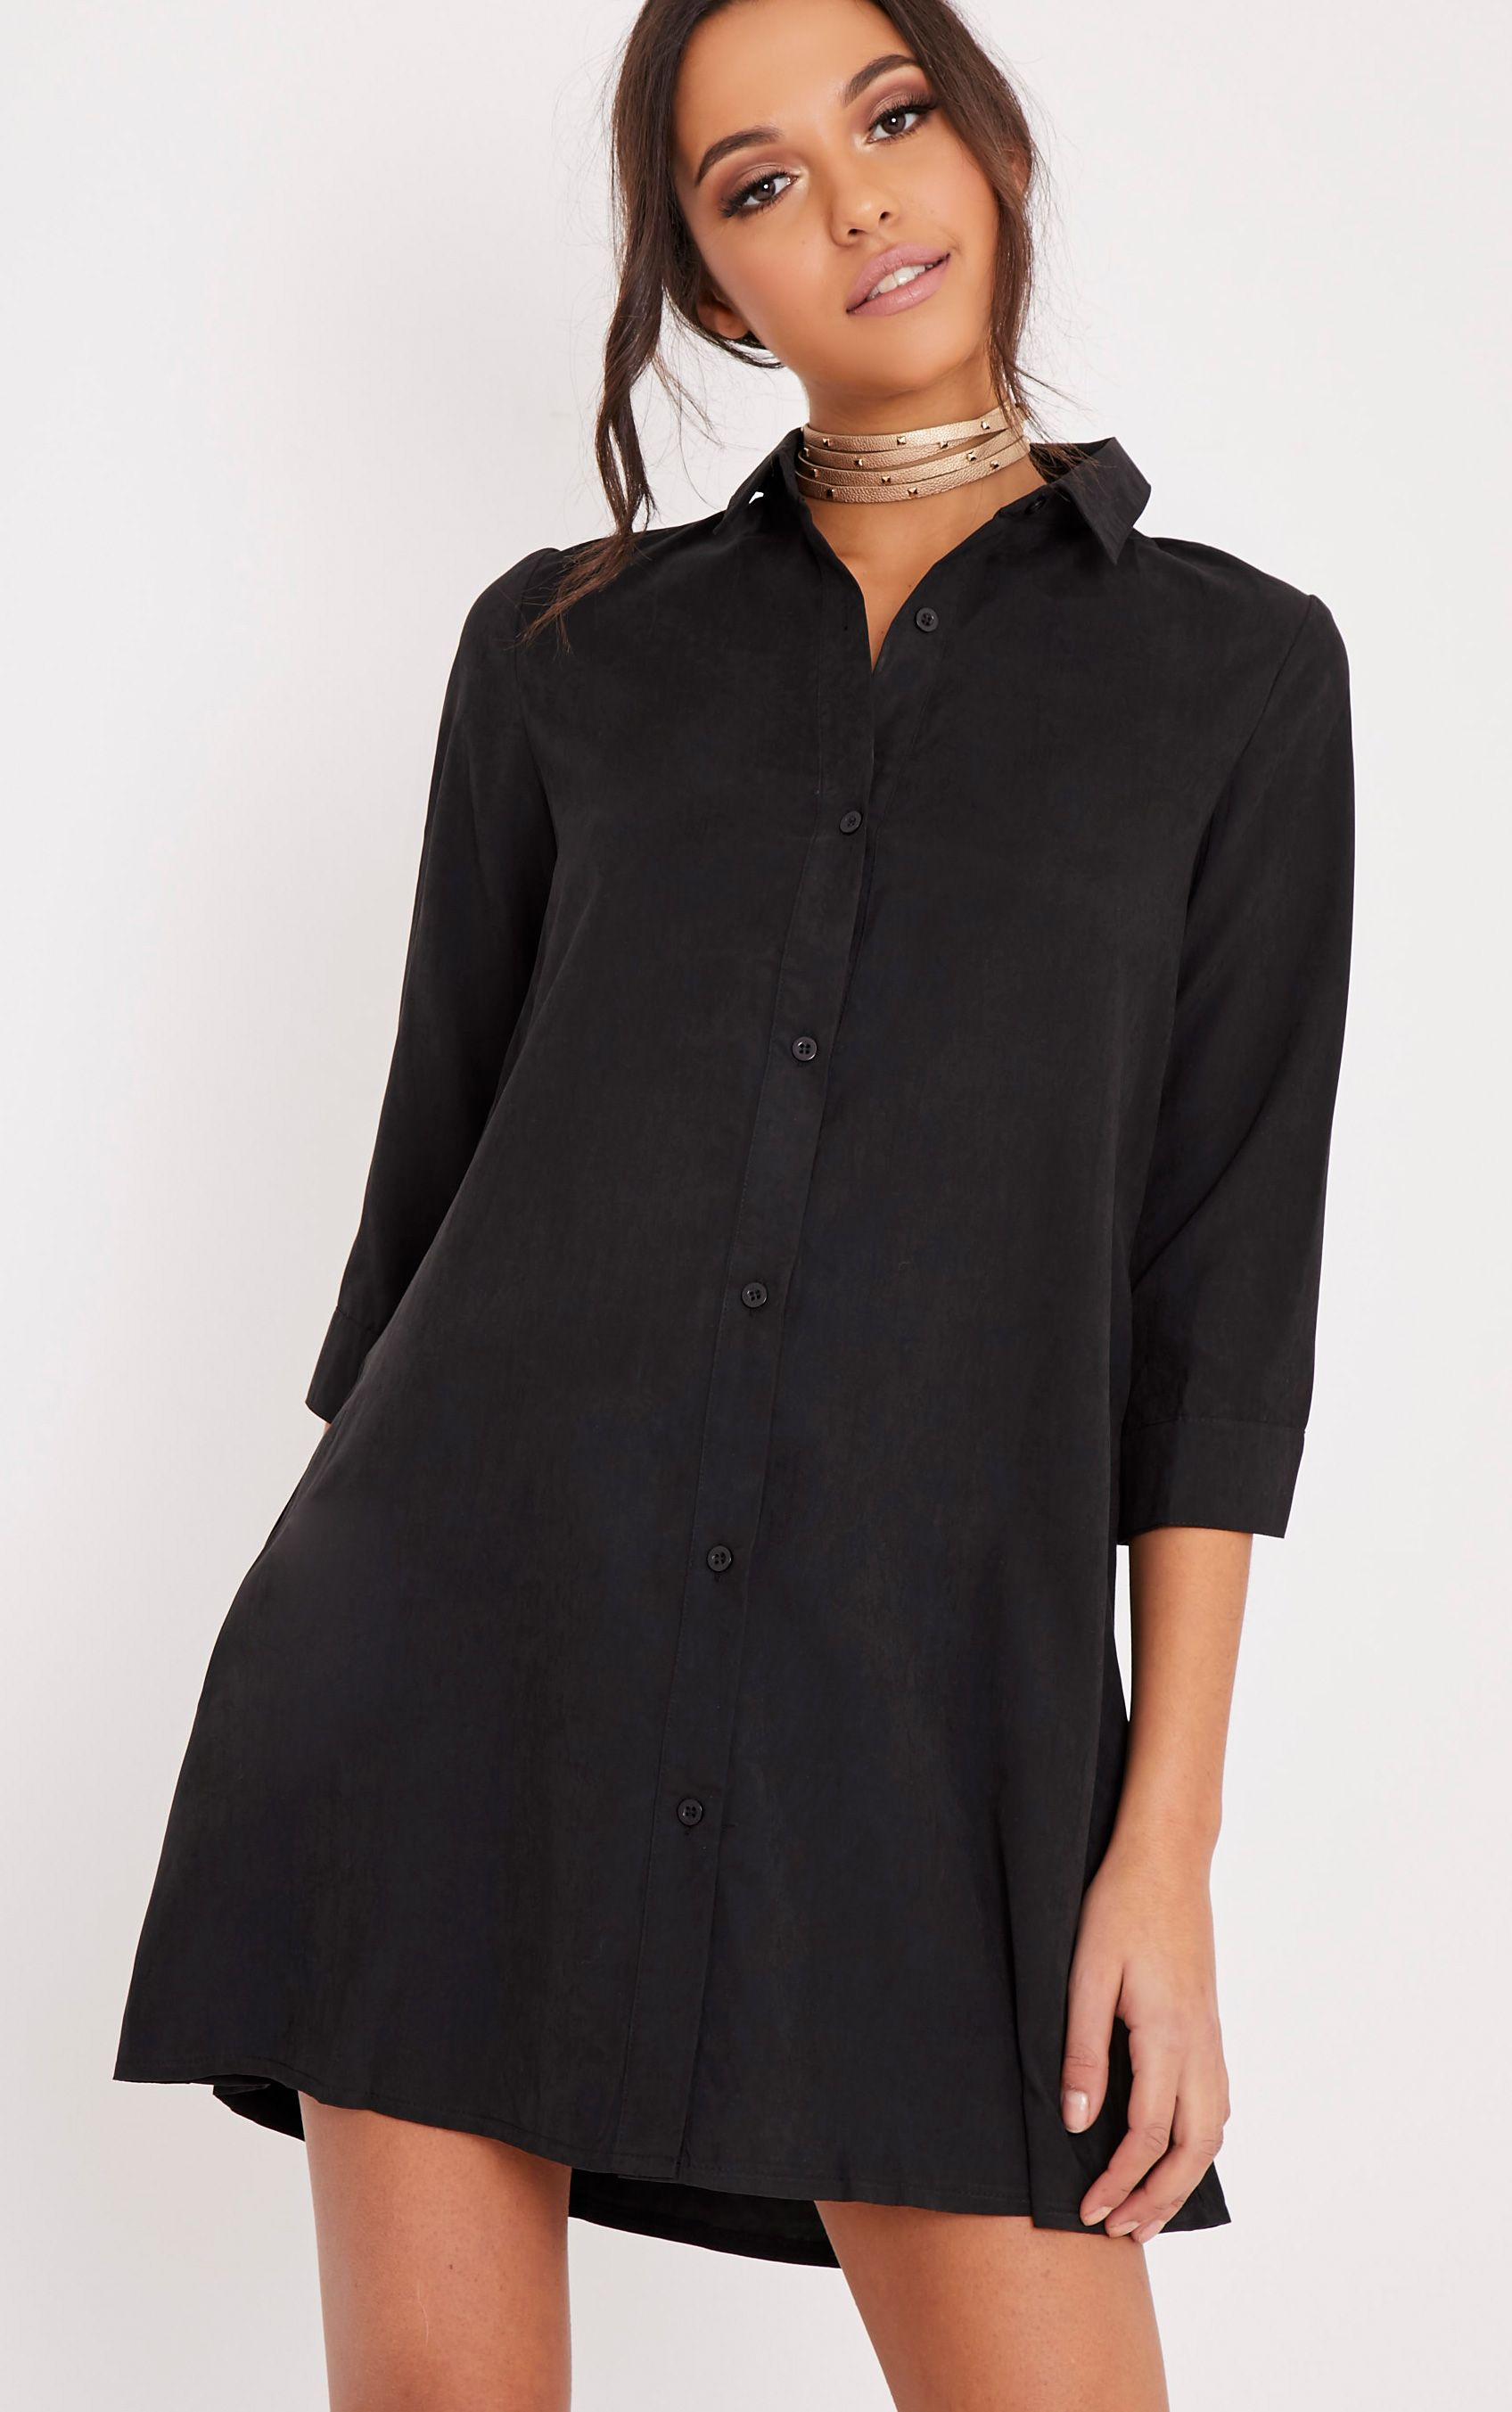 Leni Black Shirt Dress